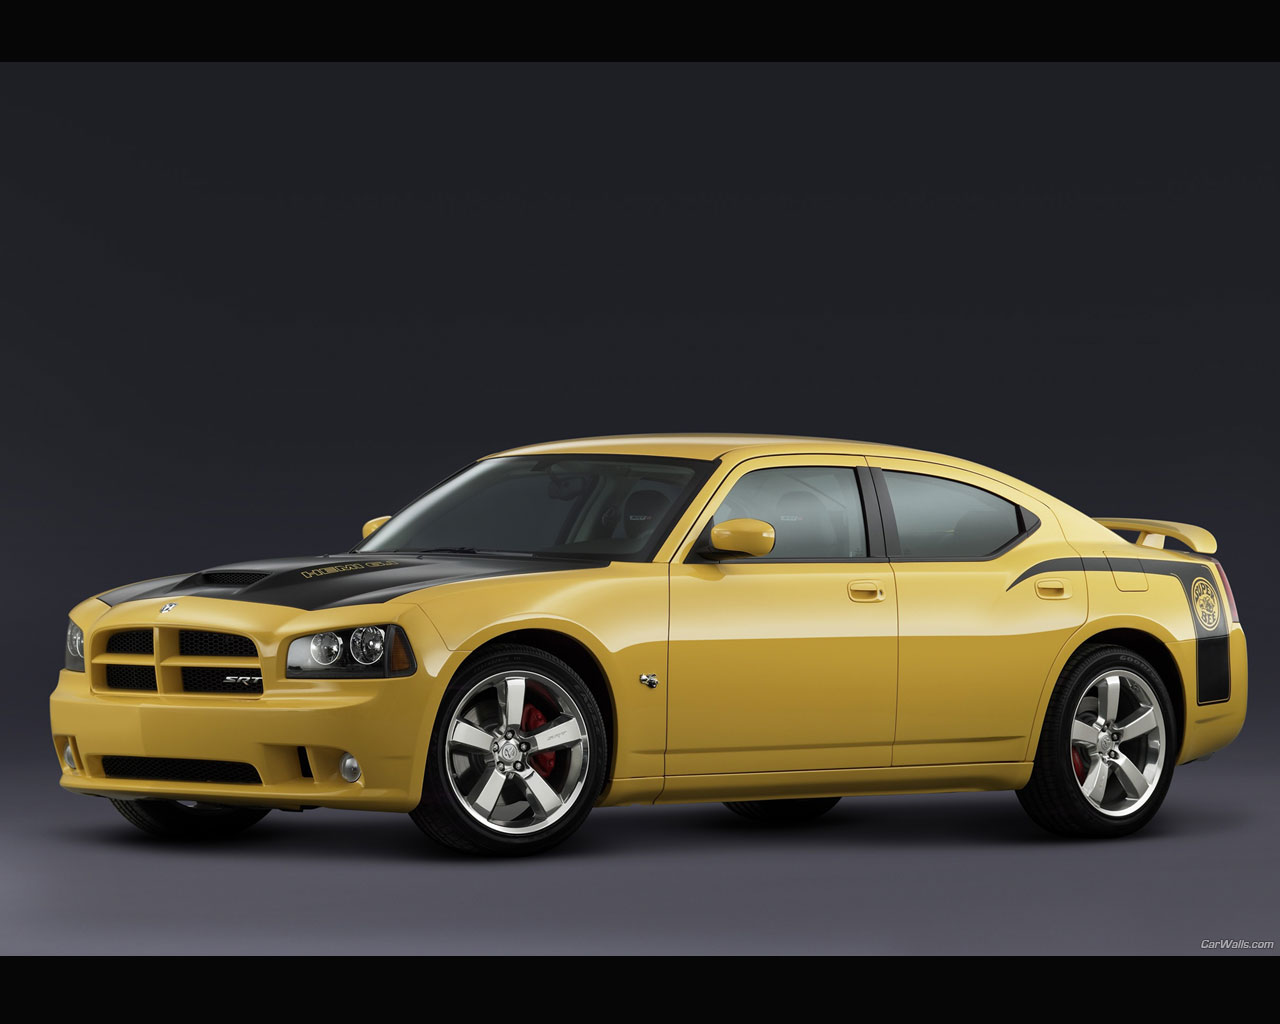 35310_Dodge_charger_132_1280_1.jpg